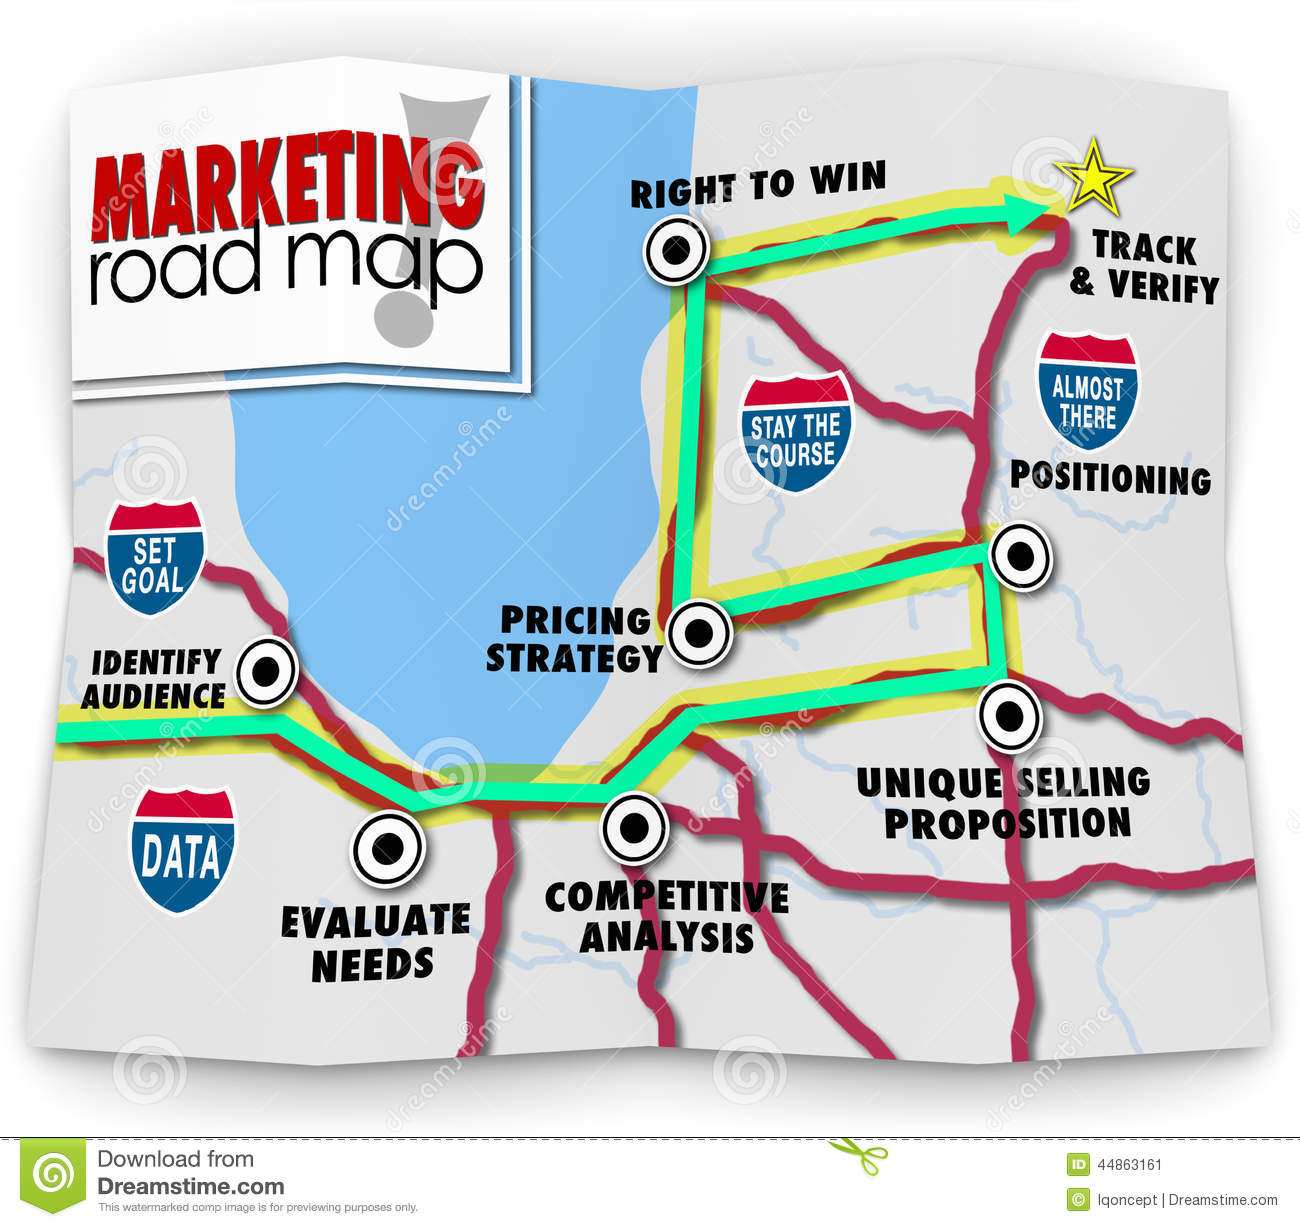 marketing road map directions success launch new product busines marketing road map directions success launch new product busines